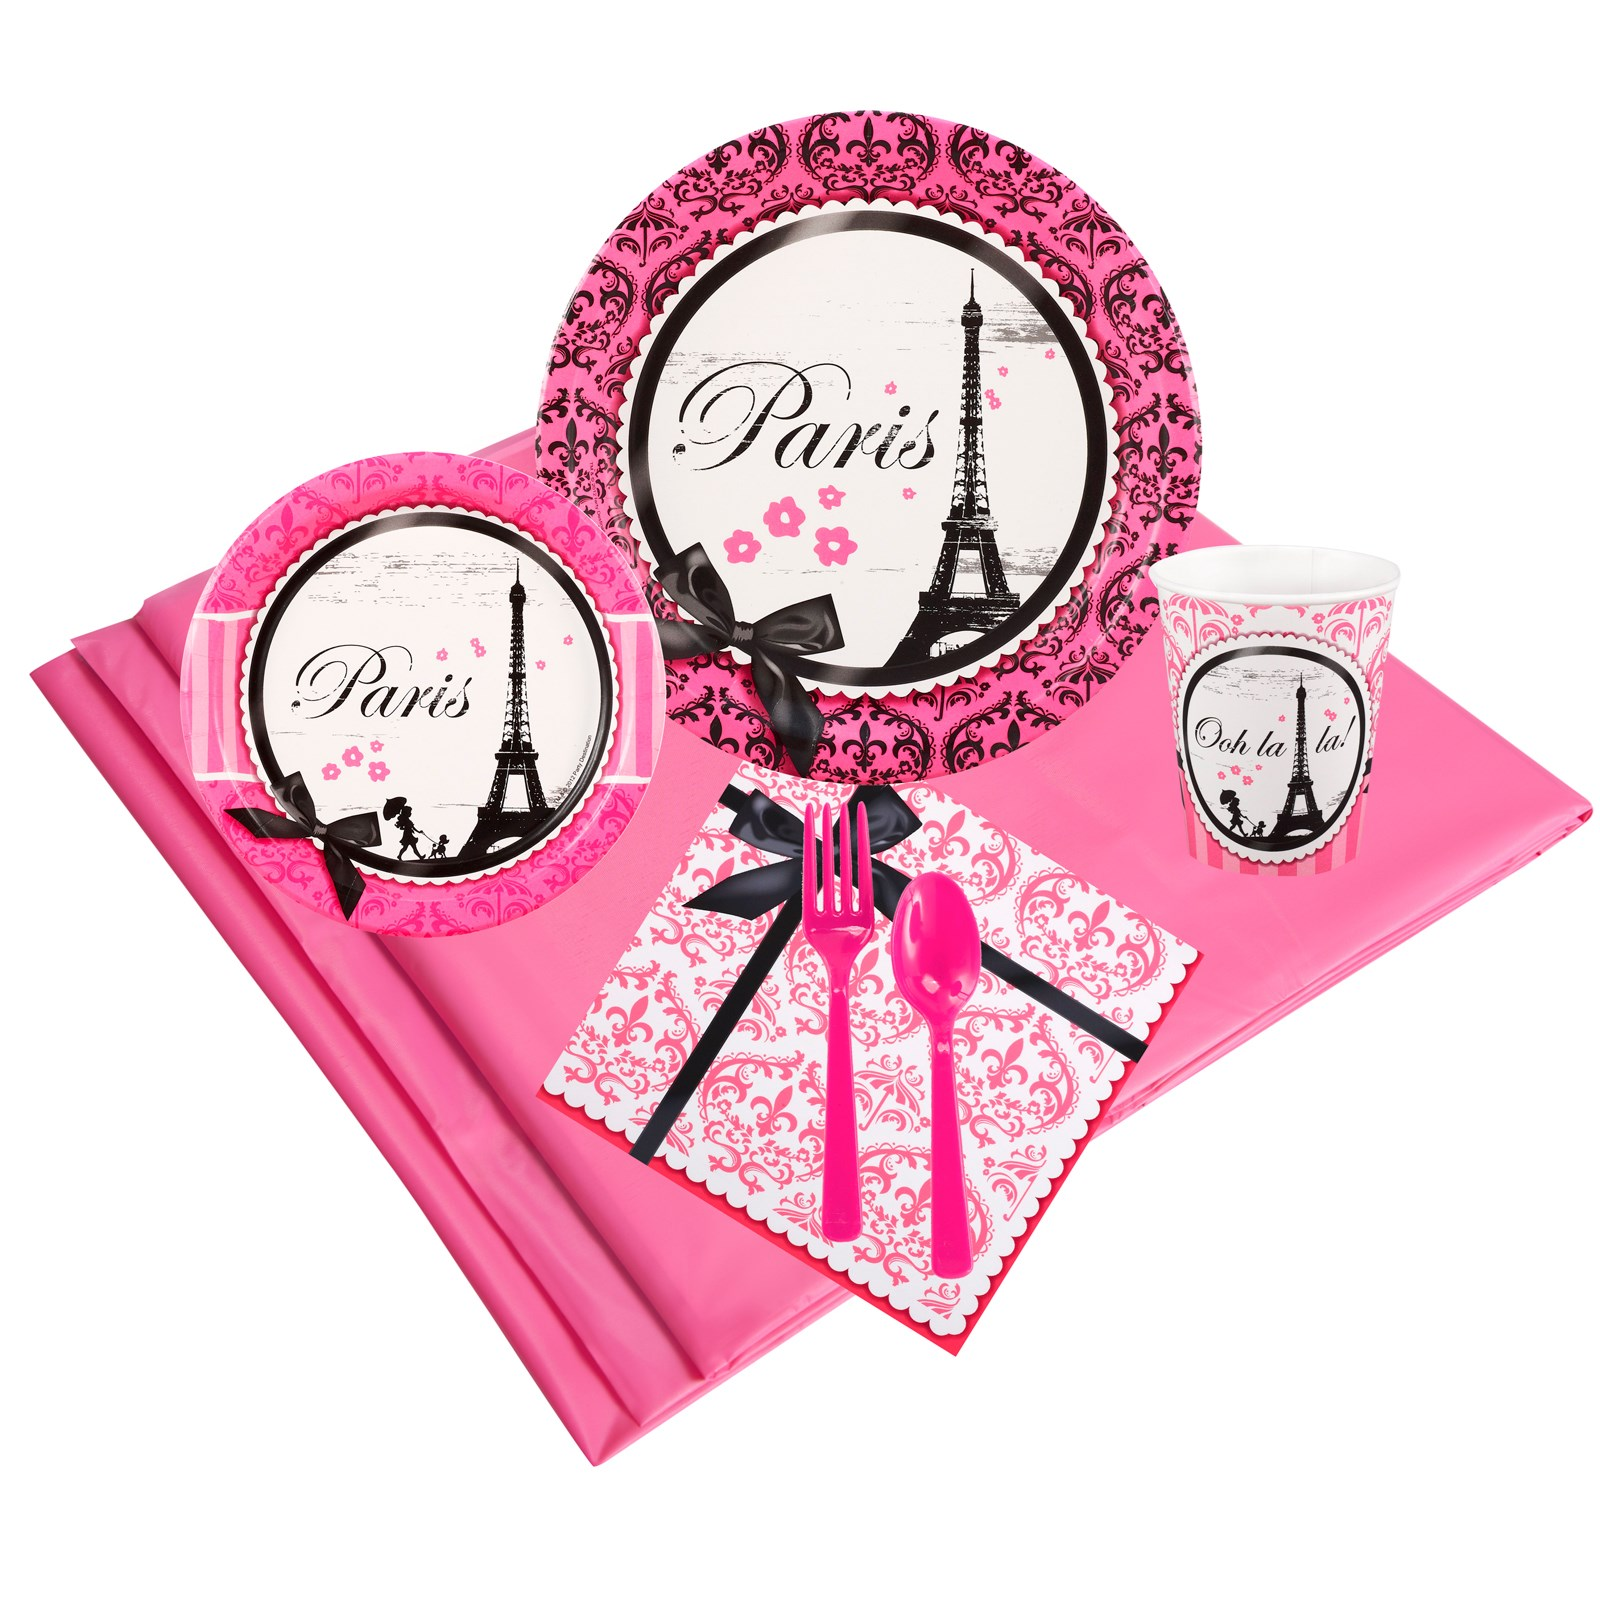 Paris Damask Value Party Pack kids birthday partyware